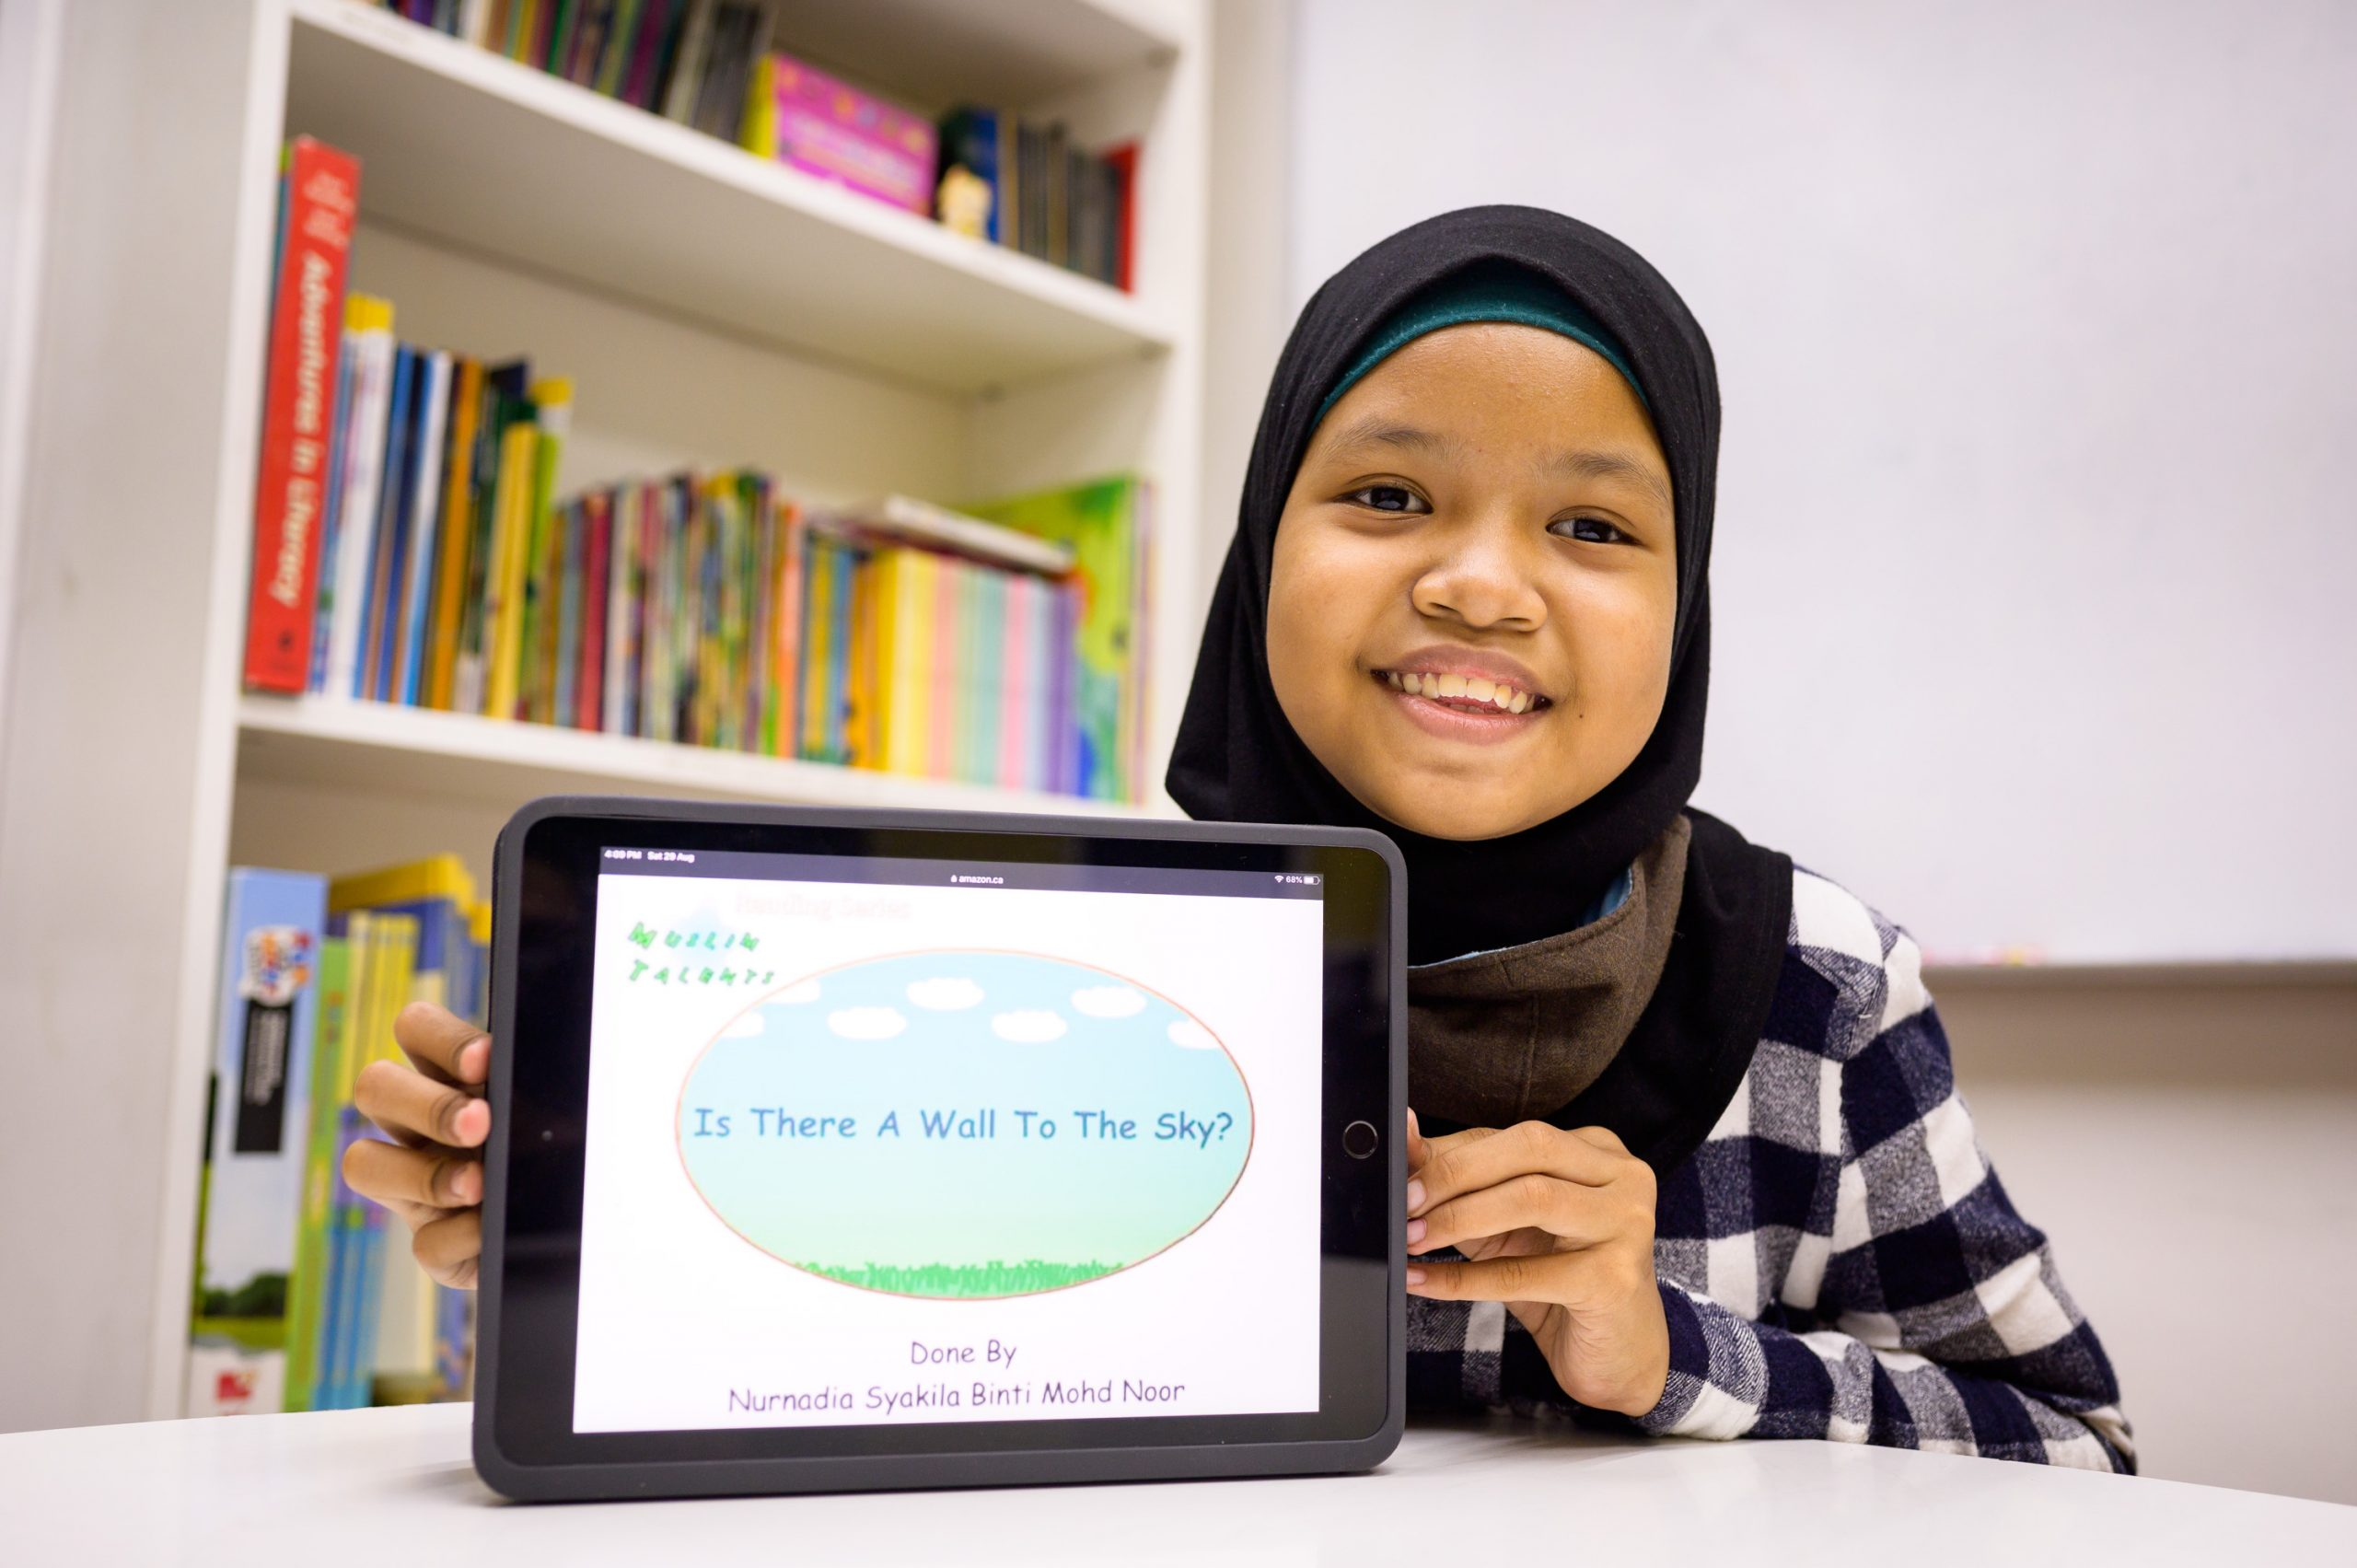 Thirteen-year-old Nurnadia Syakila hasn't let dyslexia get the better of her. Through Human Hearts, she's been able to improve her reading and writing, and has since written and illustrated her own e-book, which is now on sale at Amazon Books.